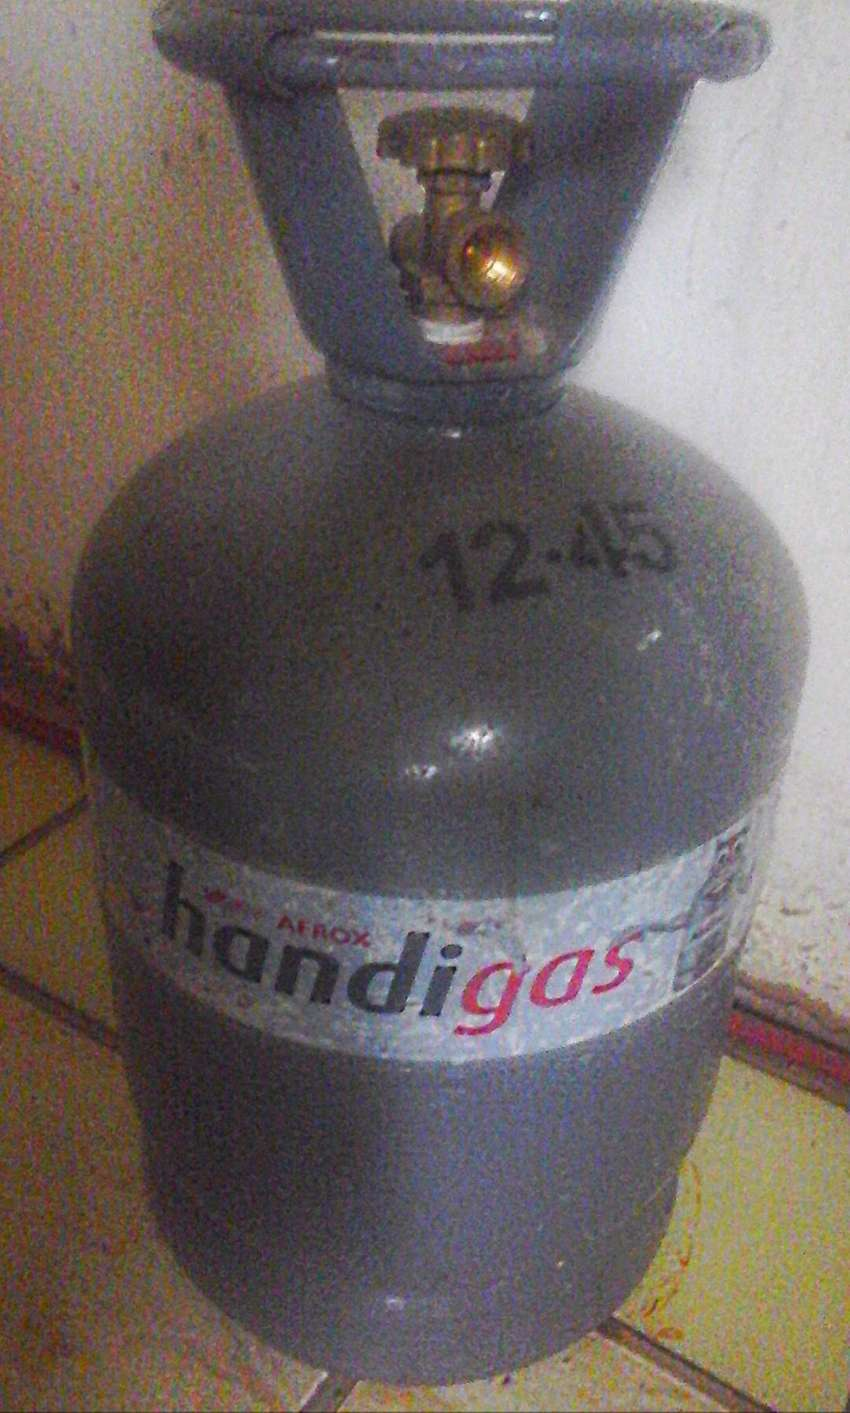 Gas Cylinder Bottle 9kg in daily use works well.